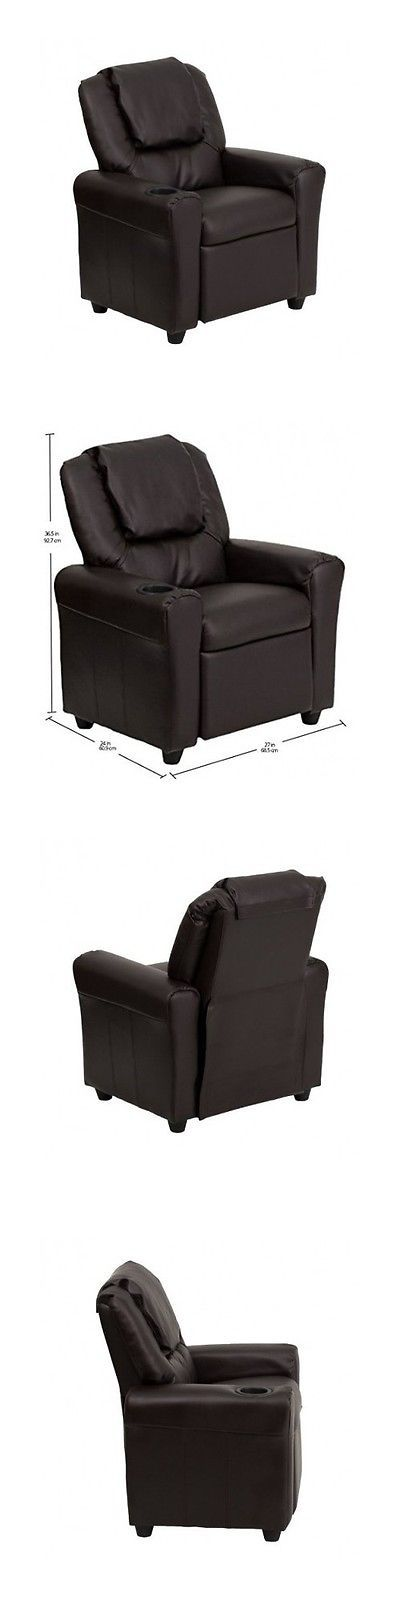 Superior Sofas And Armchairs 134648: Kids Recliner Chair Contemporary Vinyl Cup  Holder Personalize Children Furniture